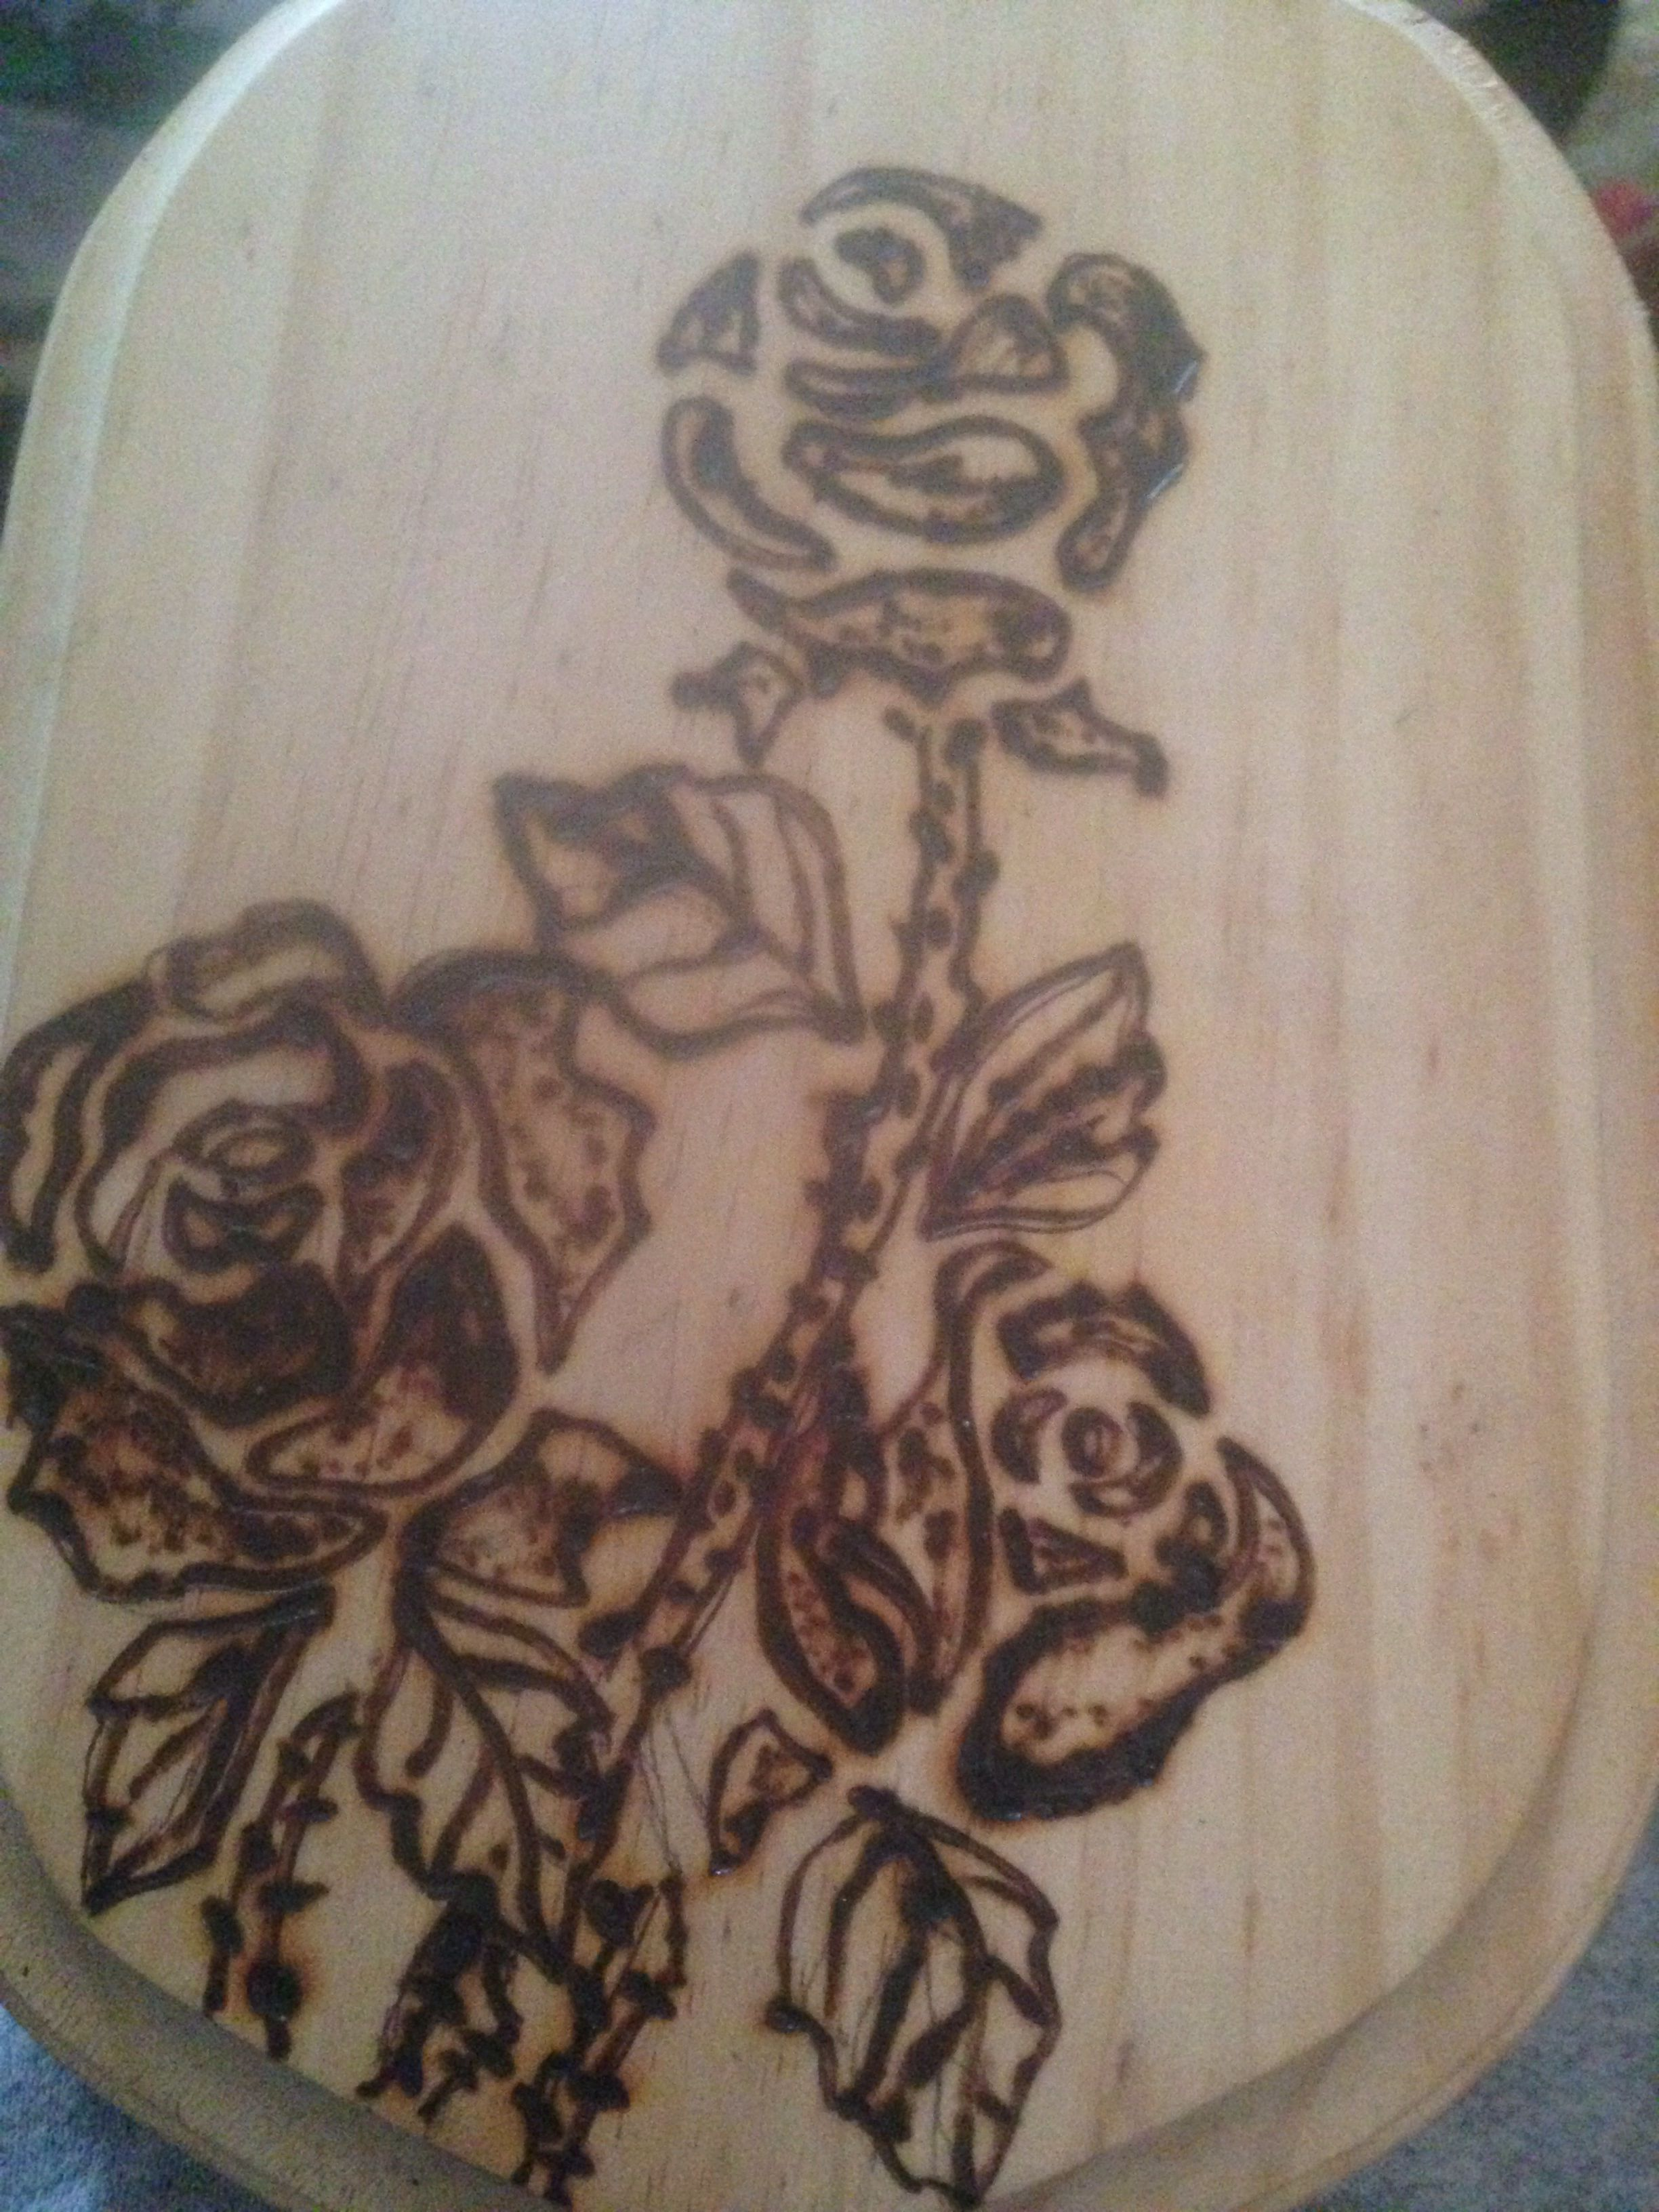 First Burn attempt in over 20 years. Not finished, yet... Lots of shading left in roses...